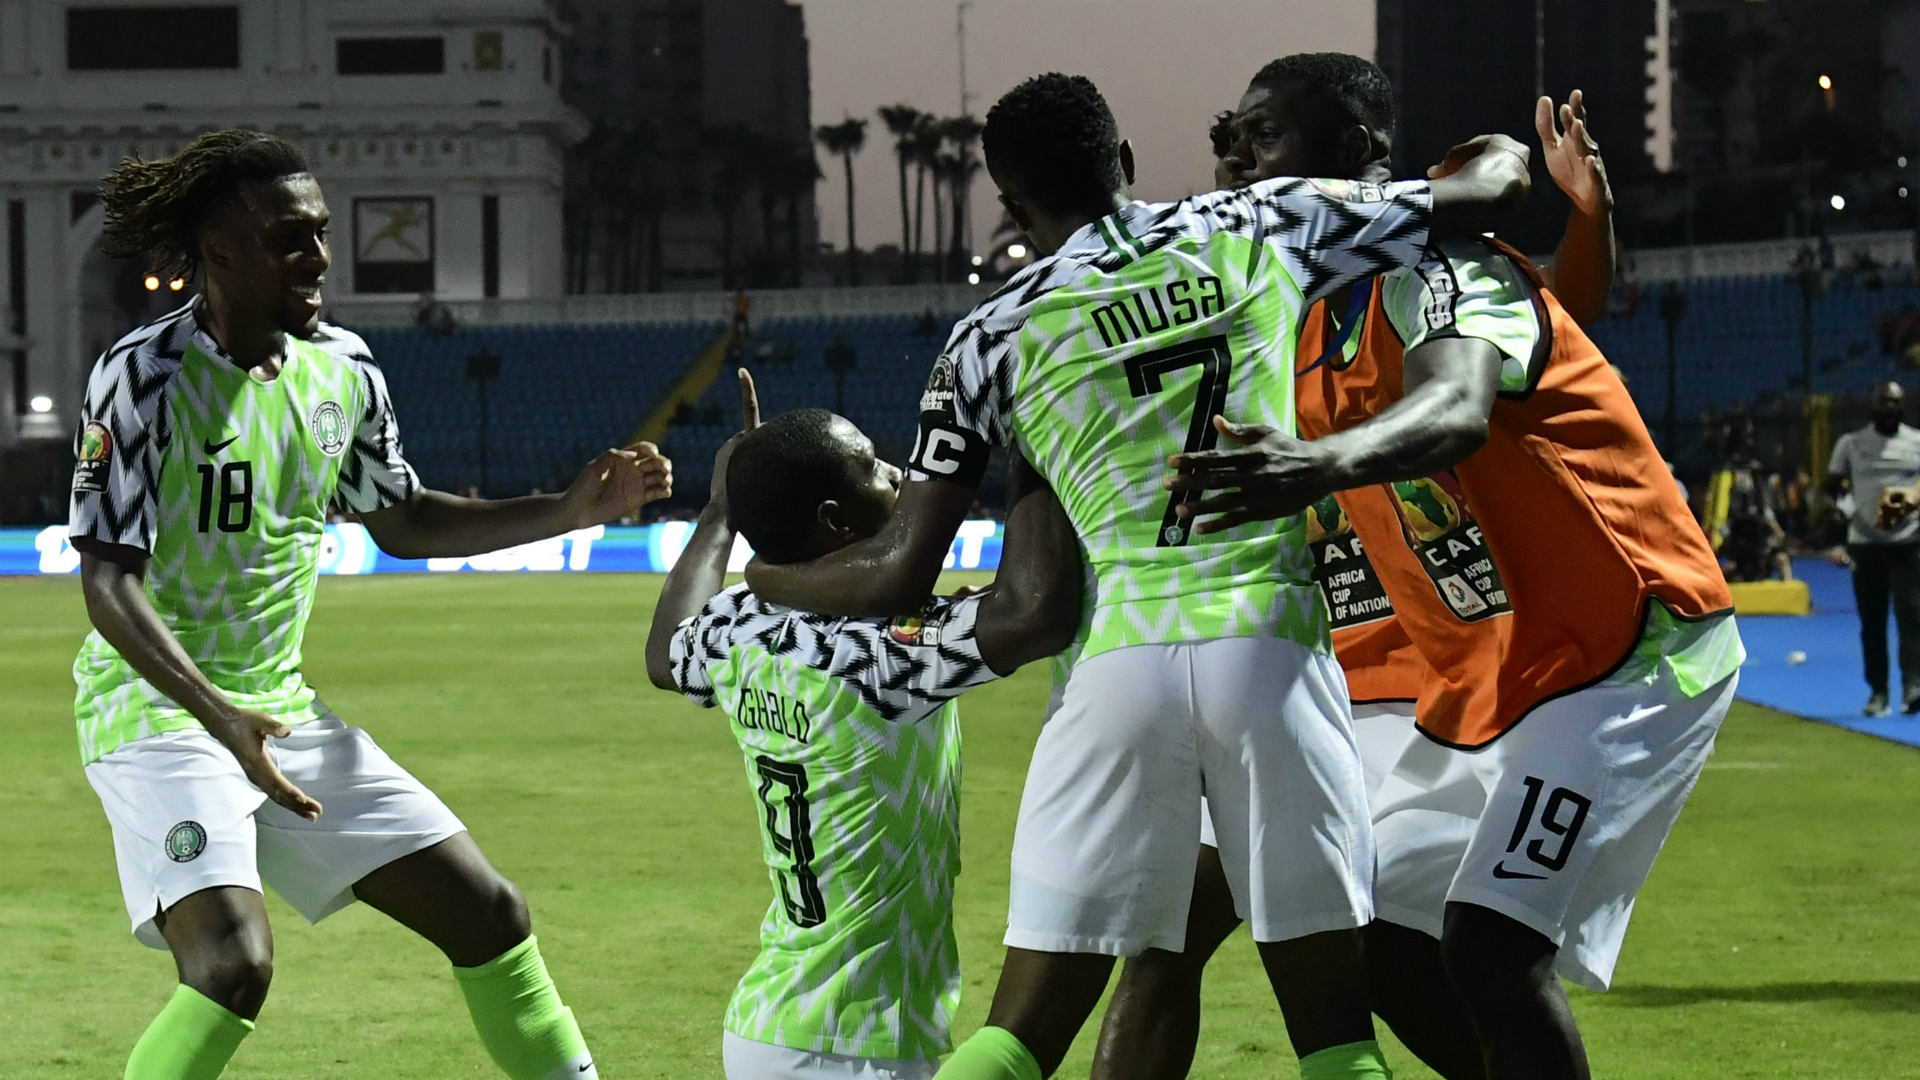 ab9f9a63 Afcon 2019: 'The Eagles are Super again!' - Twitter reacts to ...